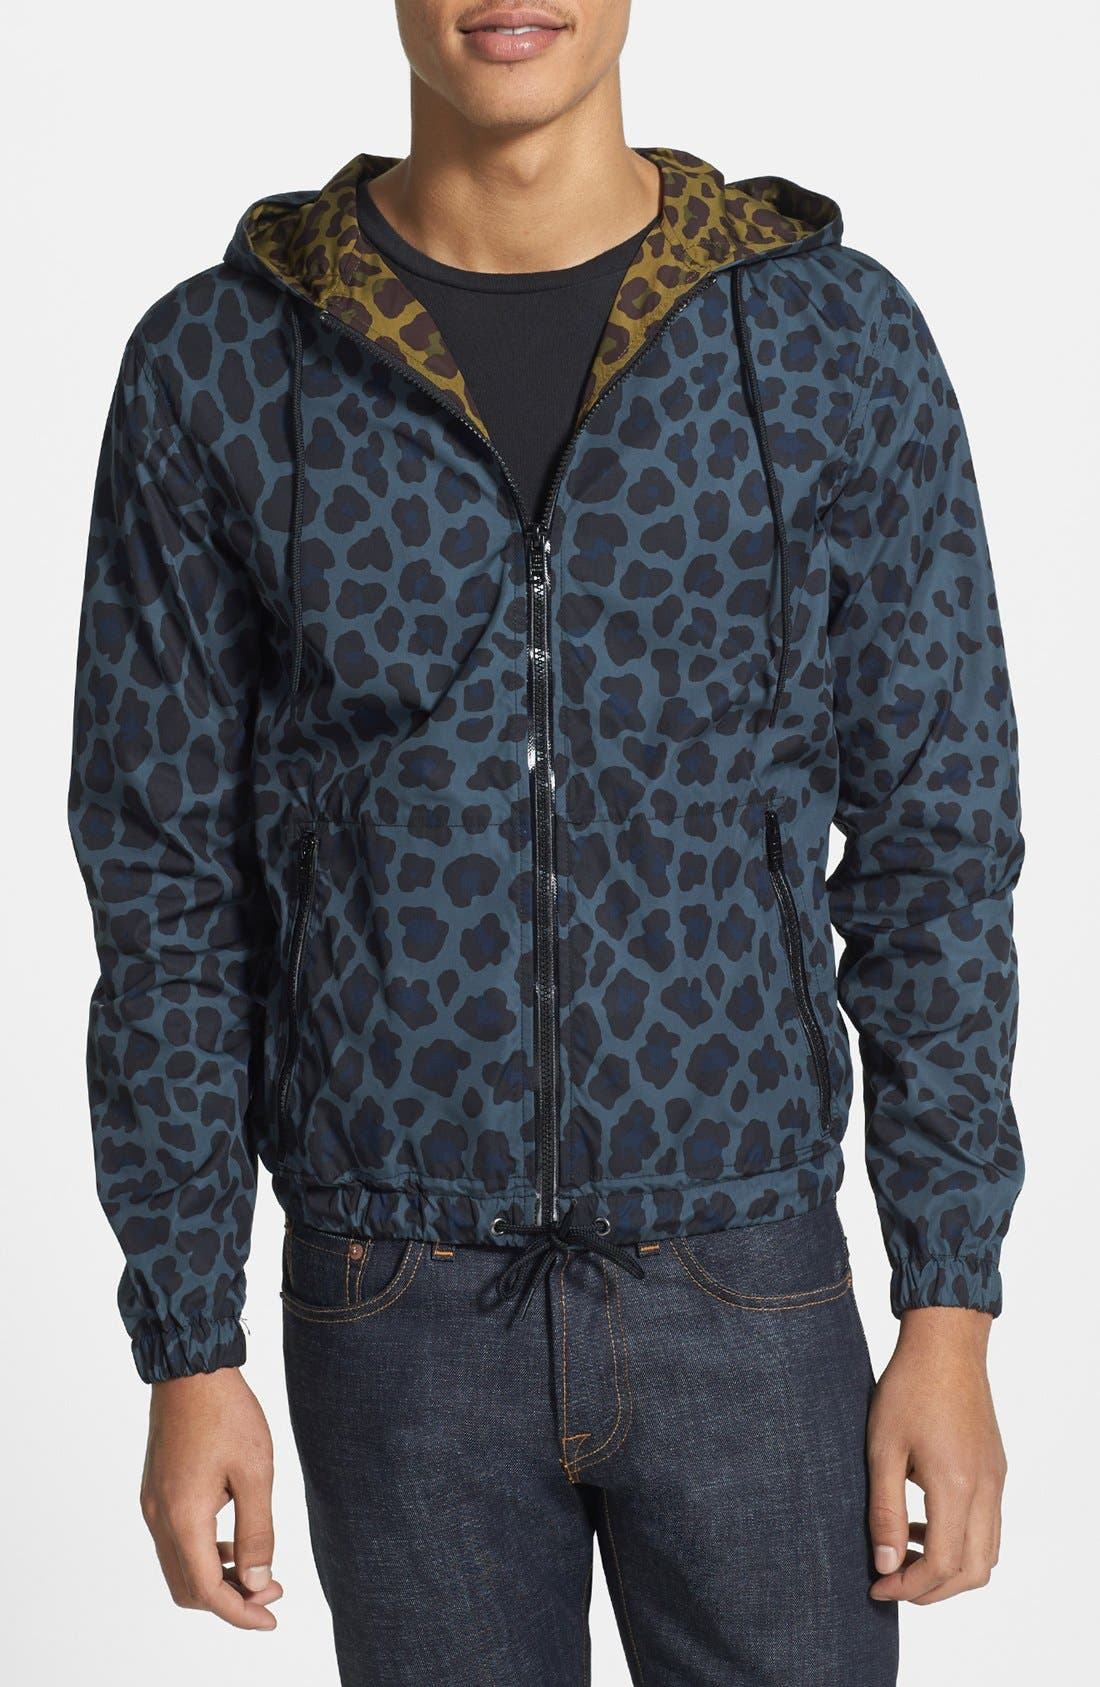 Main Image - MARC BY MARC JACOBS 'London Leopard' Water Resistant Jacket